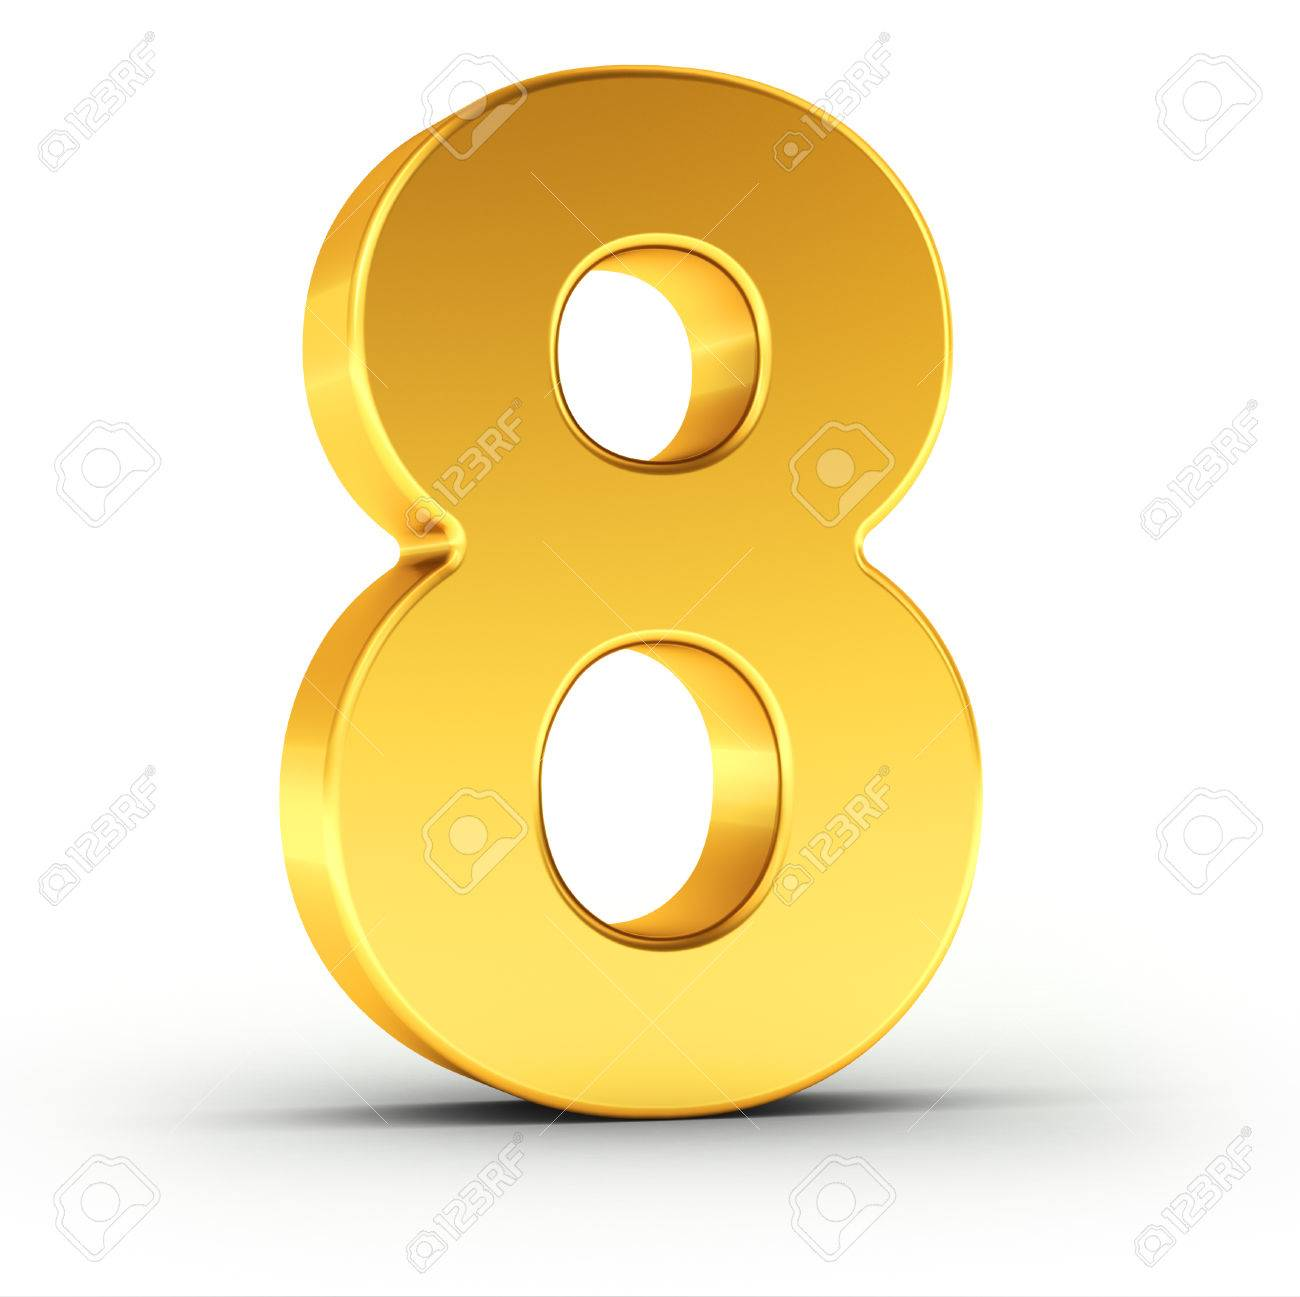 The number eight as a polished golden object over white background with clipping path for quick and accurate isolation. - 52778294